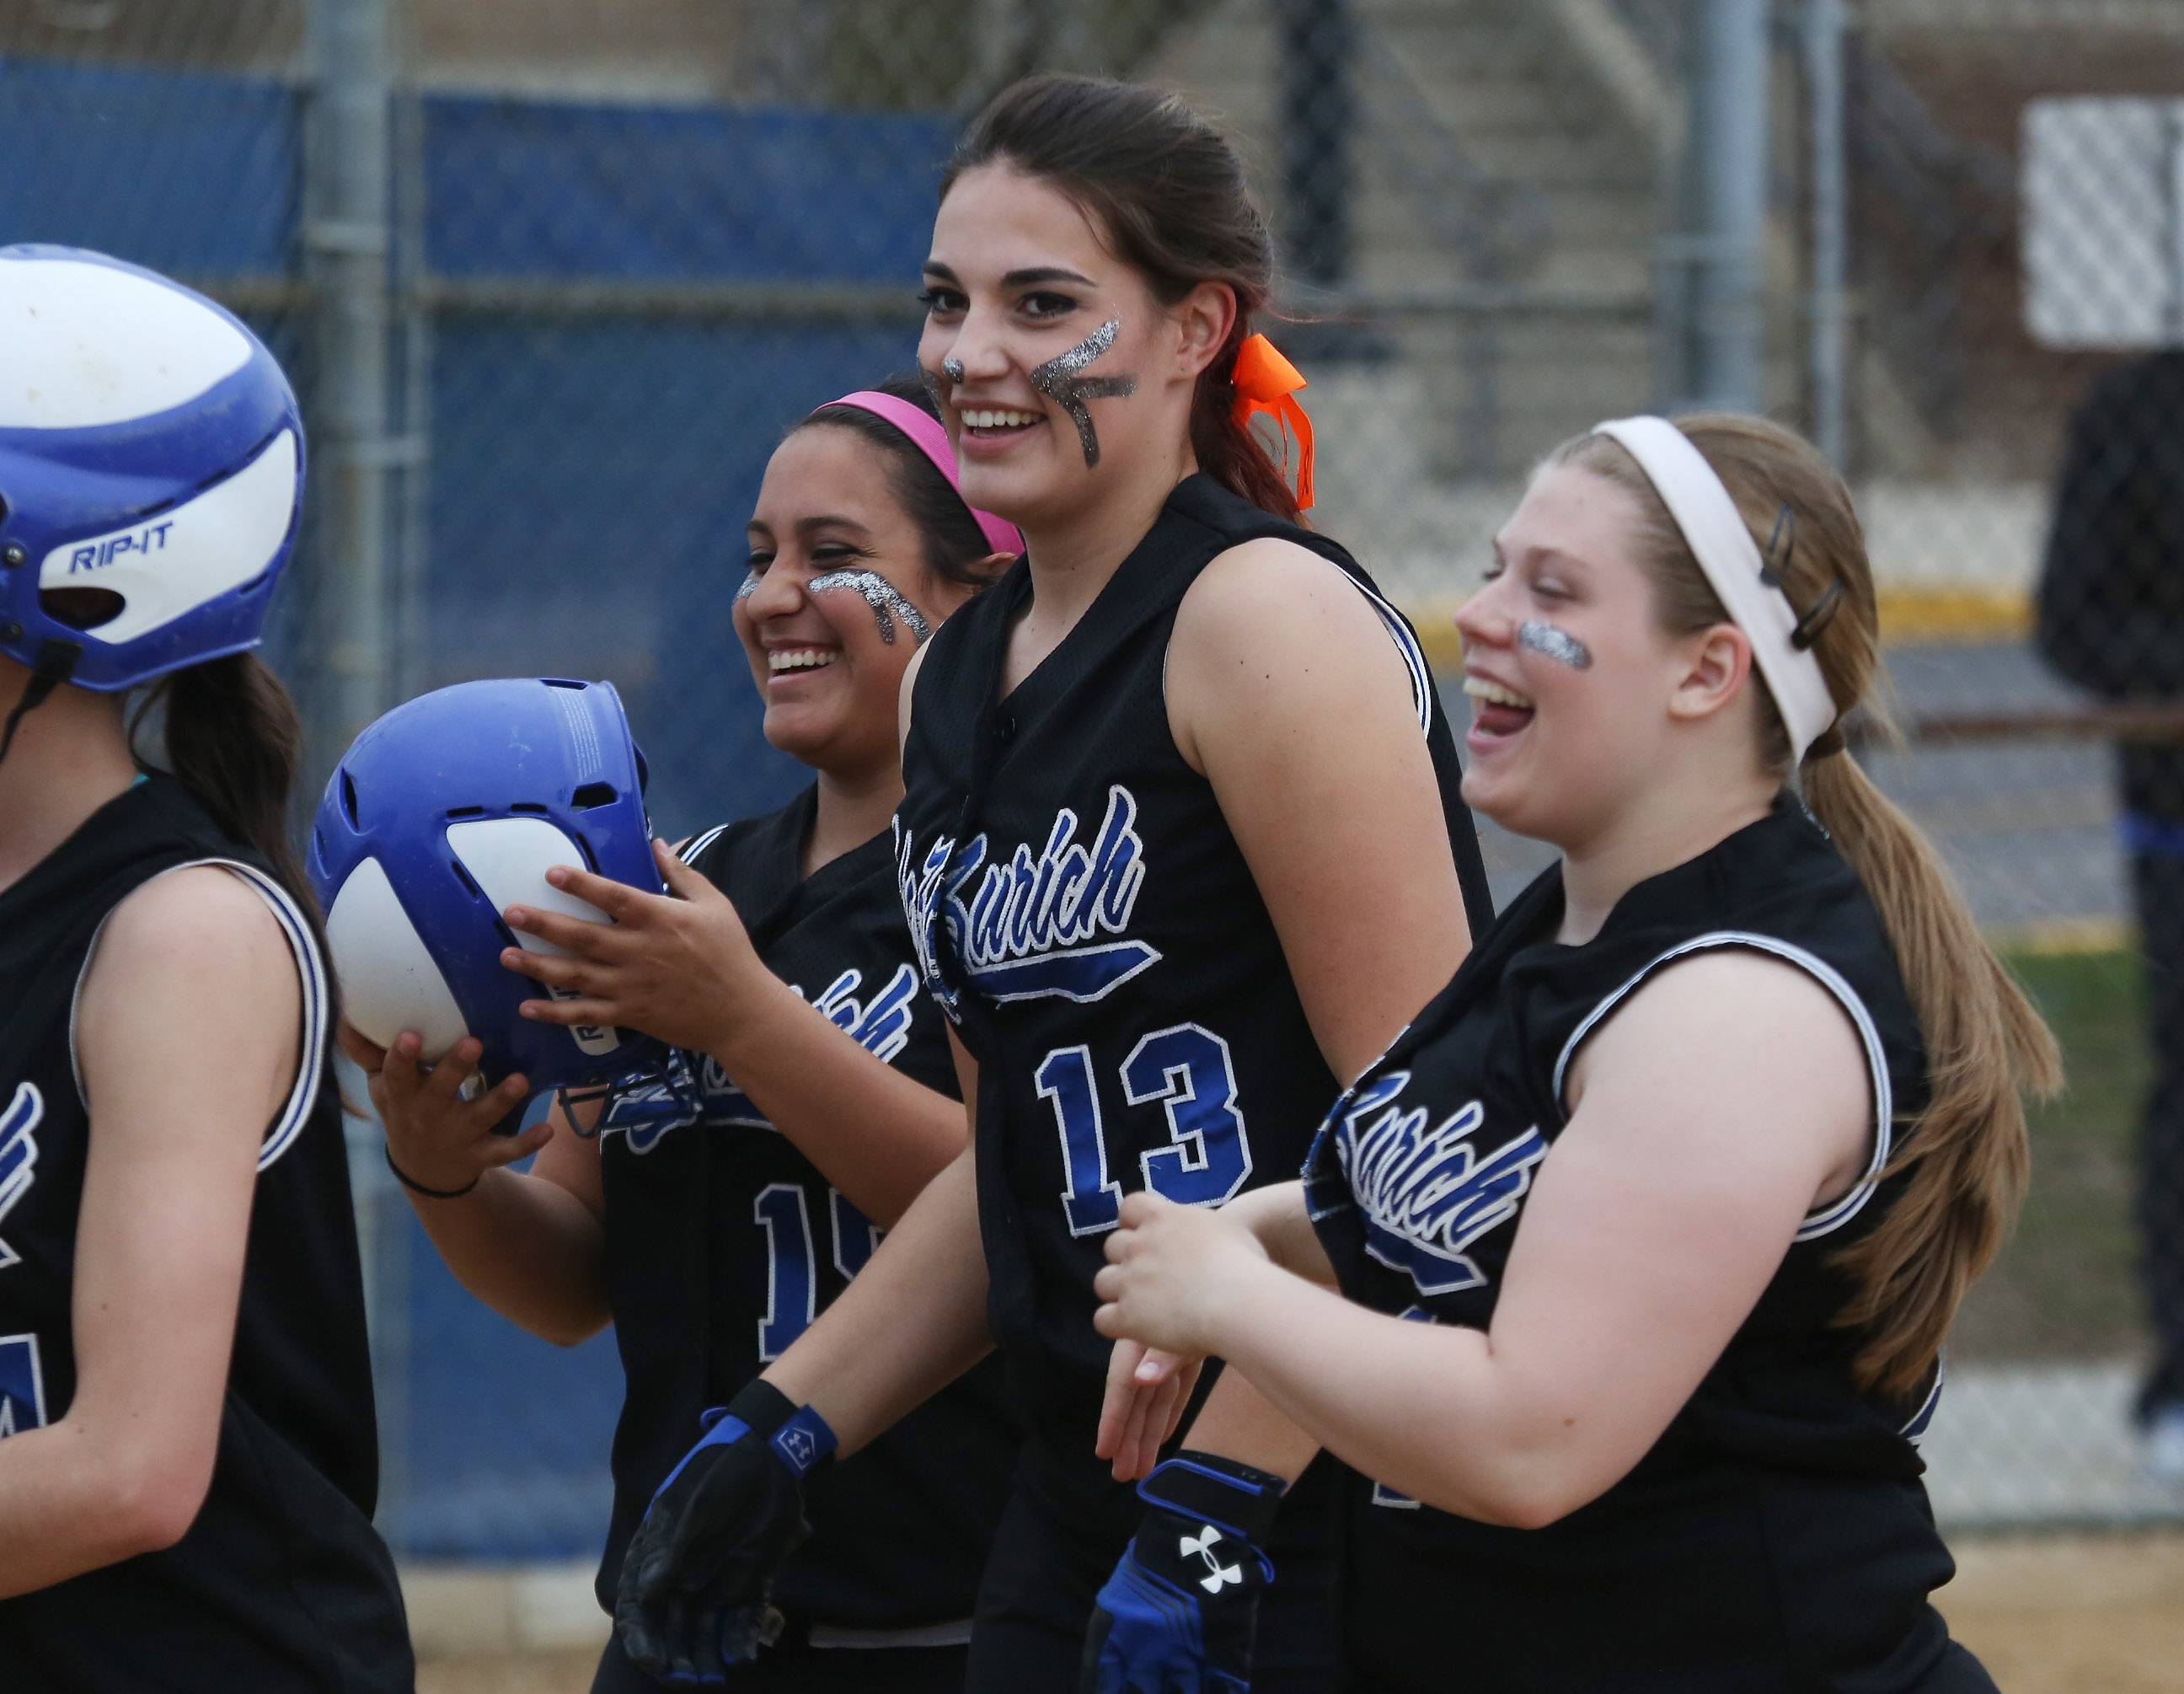 Lake Zurich hitter Mallory Parsons (13) celebrates with teammates after a hitting grand slam in the first inning against visiting Warren.